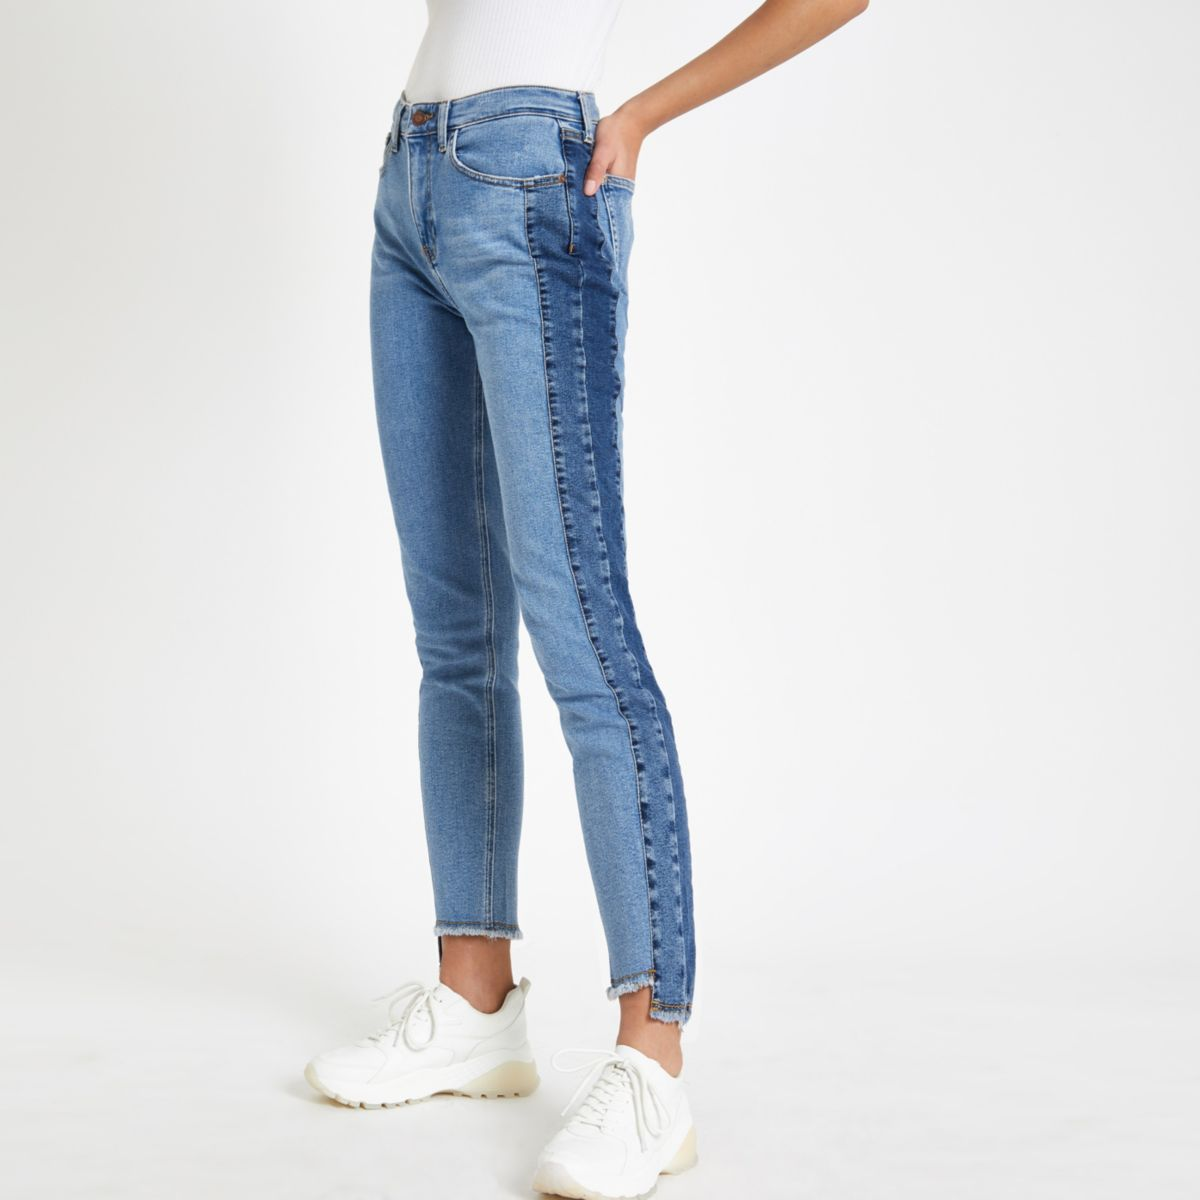 Blue Casey Shadow Side Panel Slim Fit Jeans                                  Blue Casey Shadow Side Panel Slim Fit Jeans by River Island